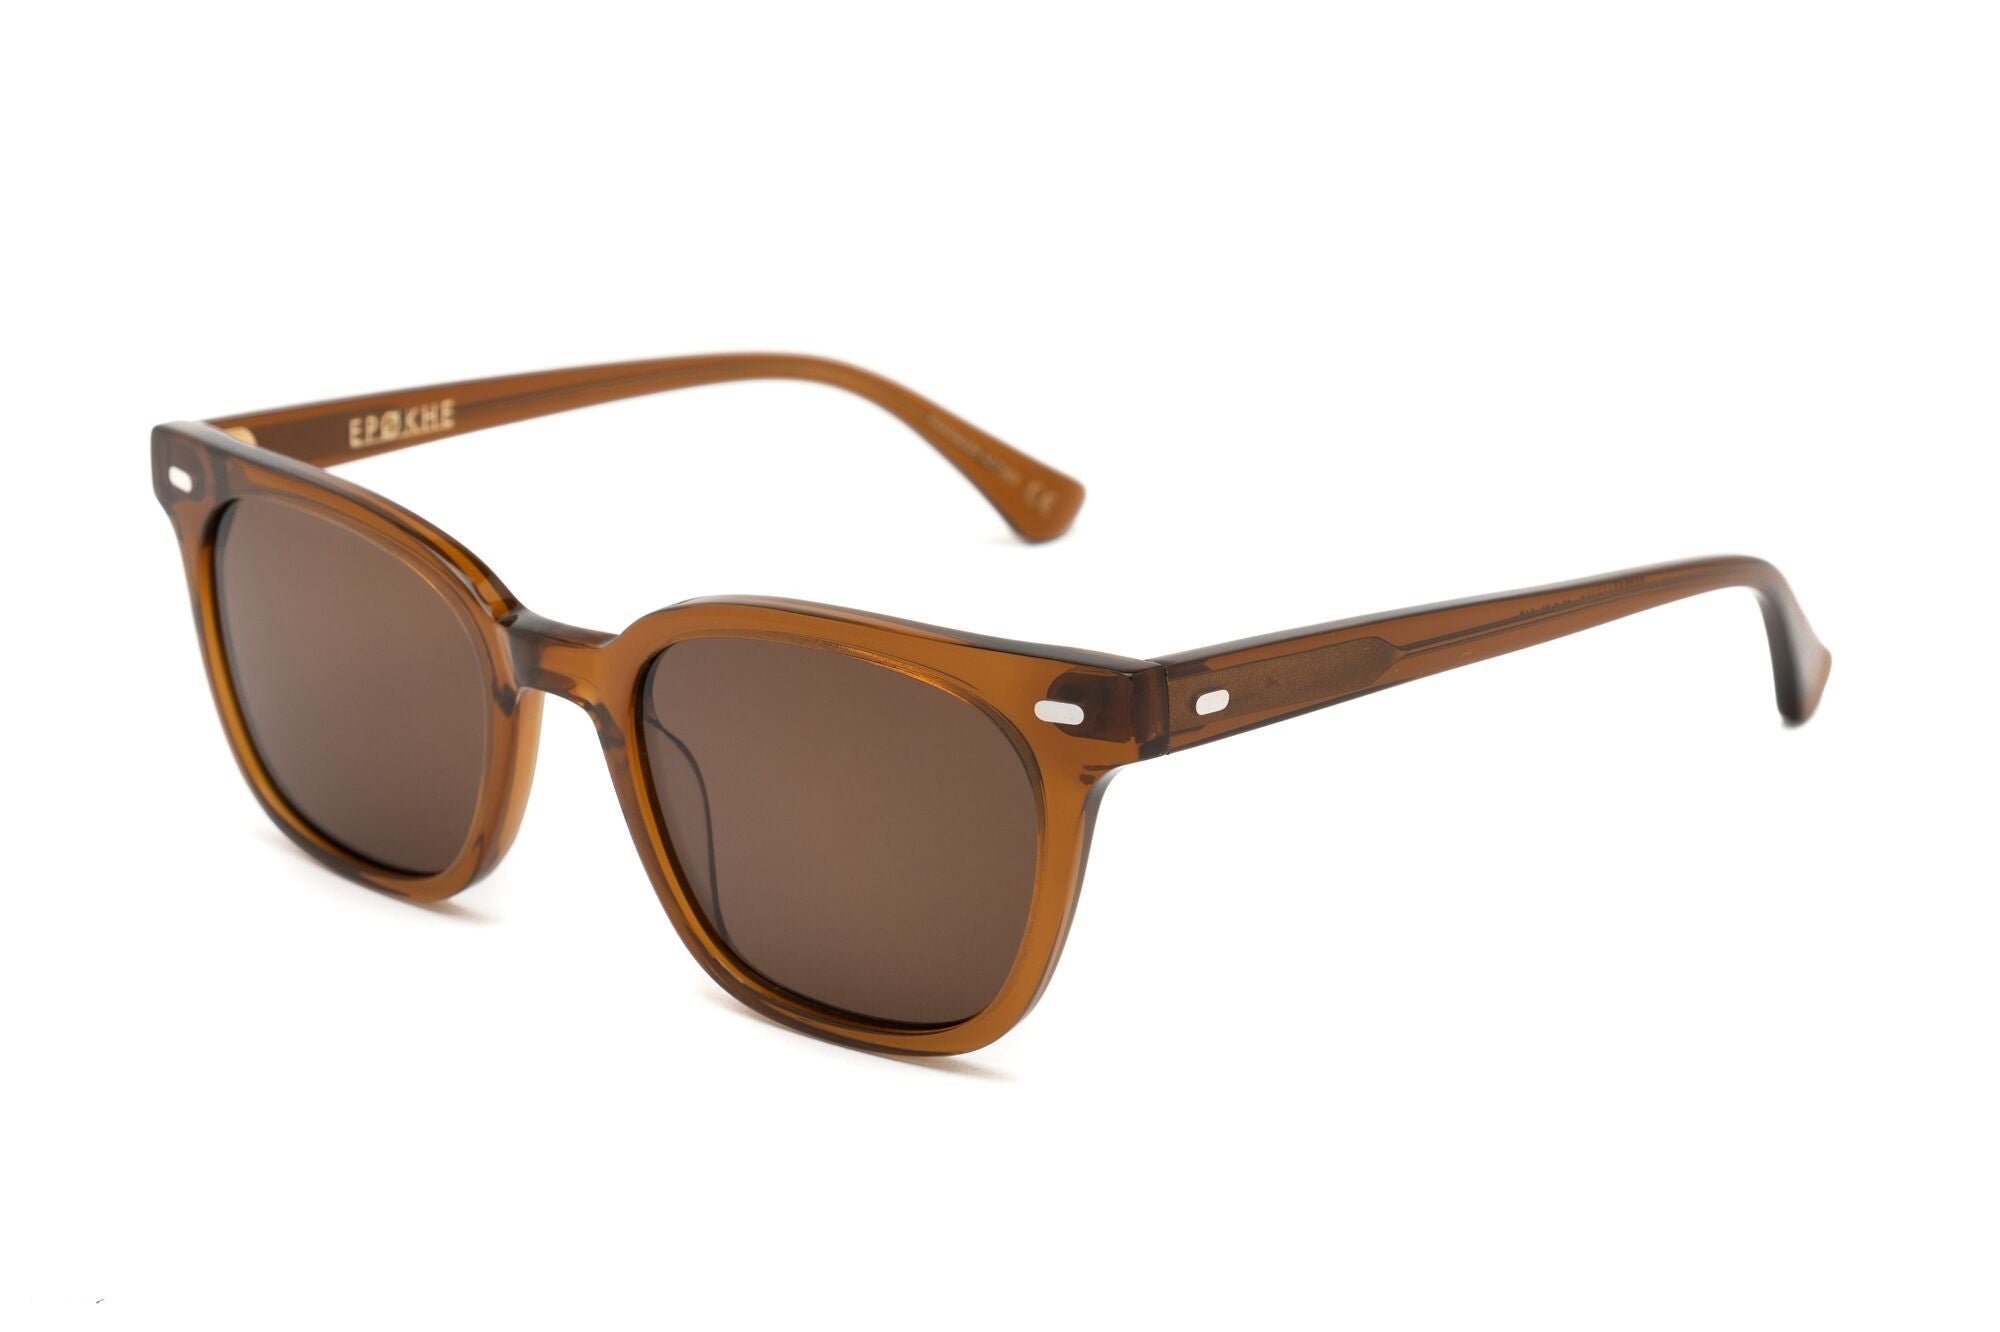 Epokhe KINO - TOBACCO POLISHED/BRONZE - Board Store EpokheSunglasses